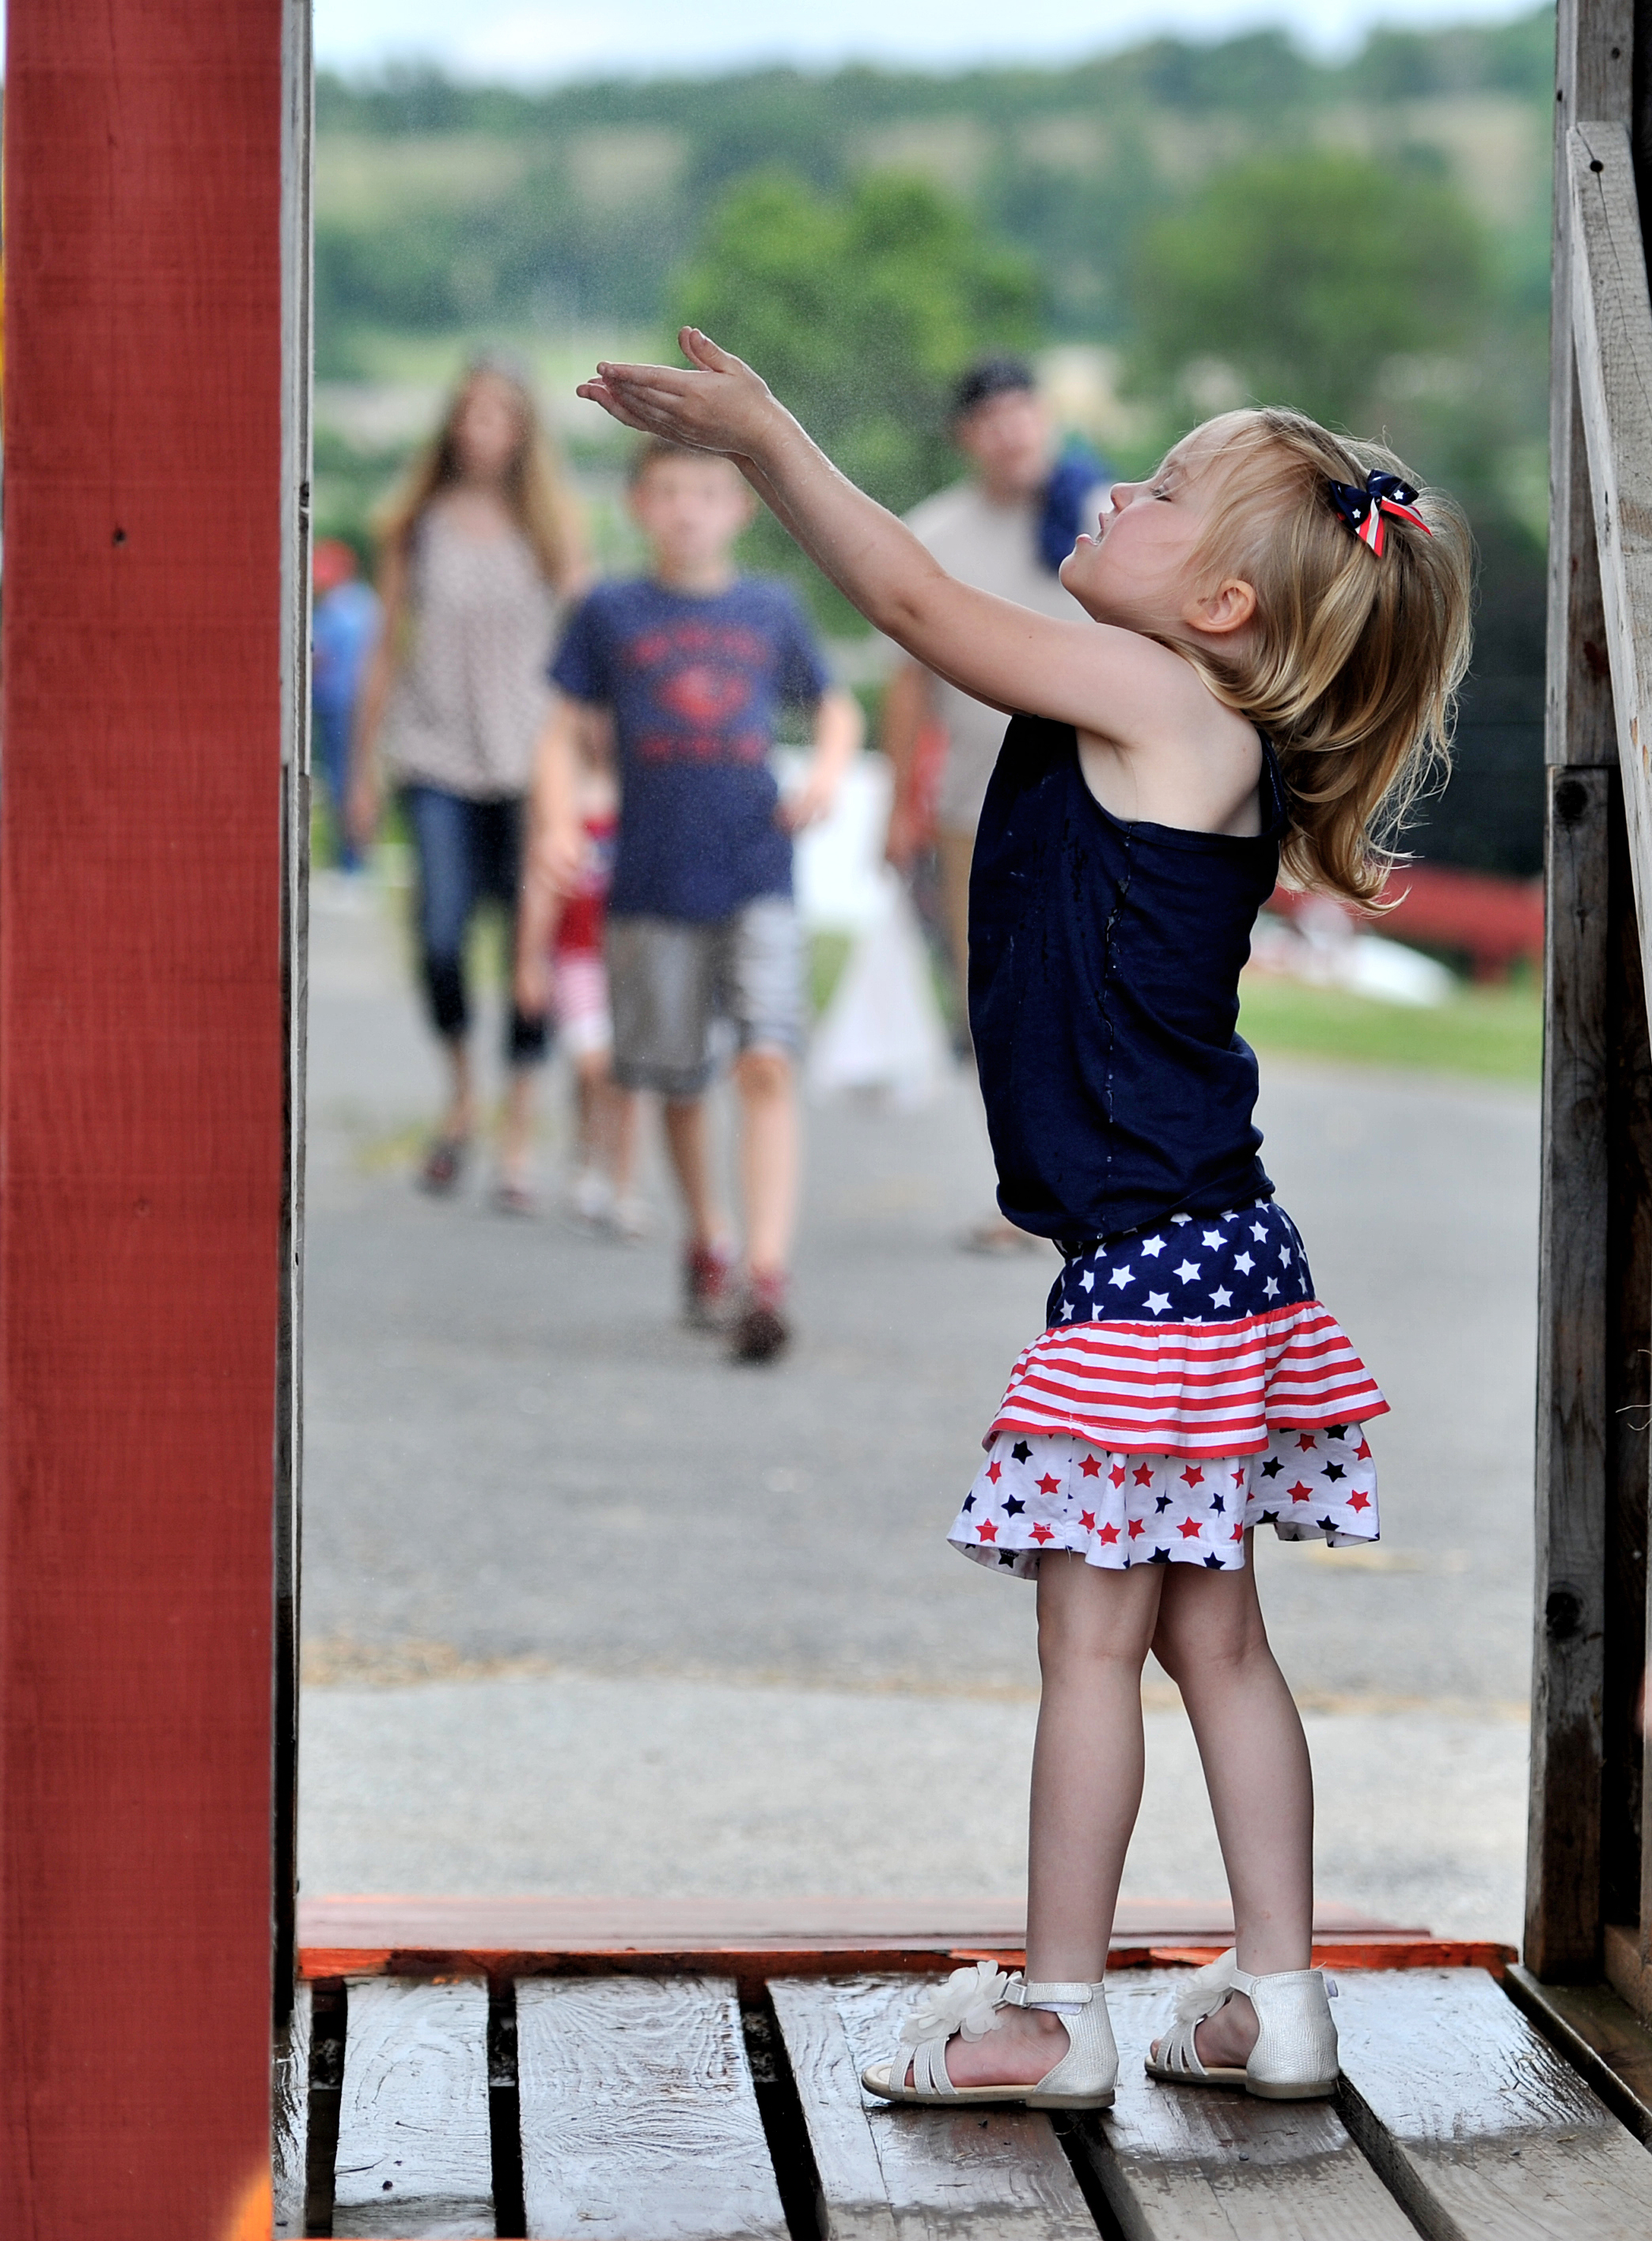 Julia Guenin, 3, of Coplay, PA, cools off under a water mist at the Kutztown Folk Festival in Kutztown, PA, on July 4, 2016. (Reading Eagle: Sarah Stier)